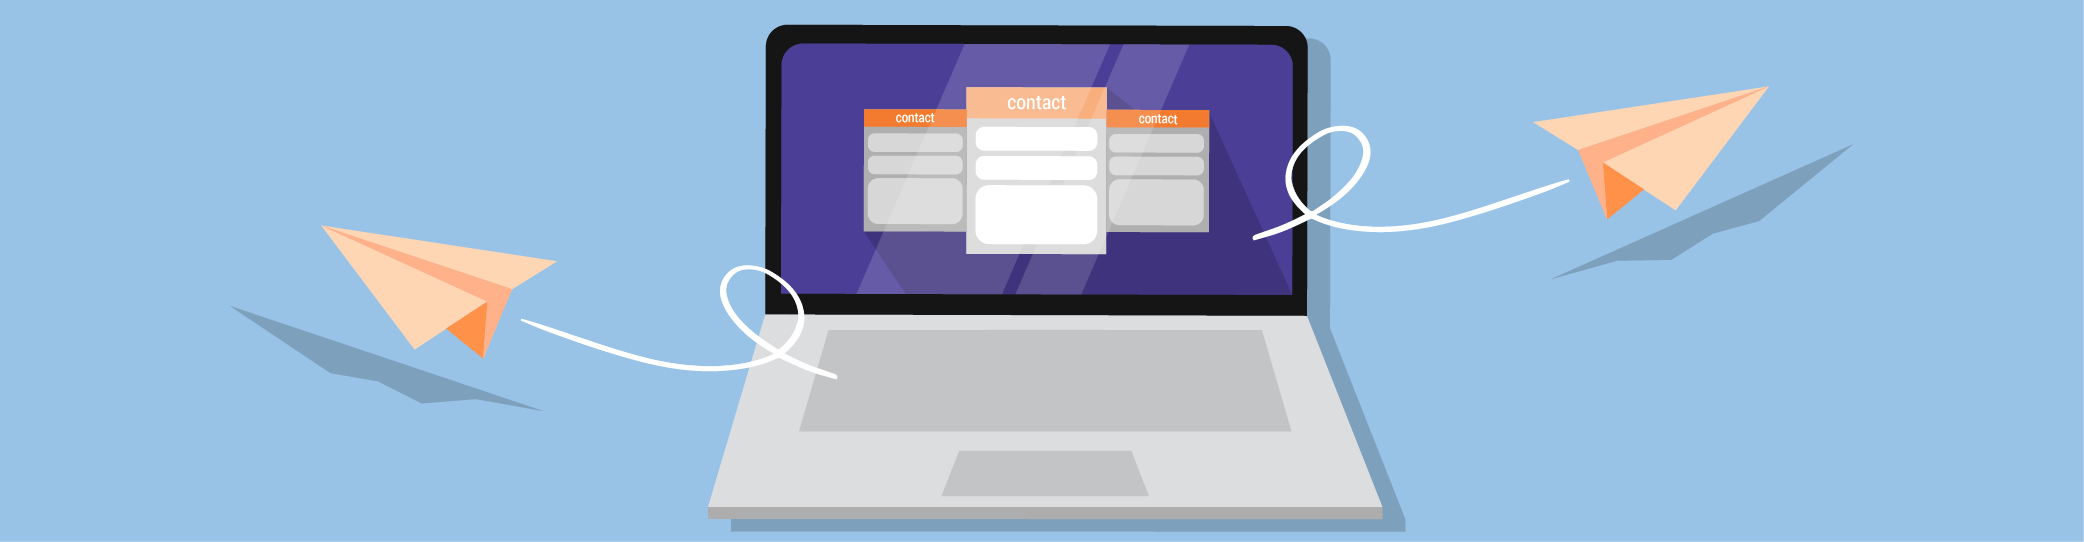 5 Of The Best Free Contact Form Plugins For Your WordPress Site